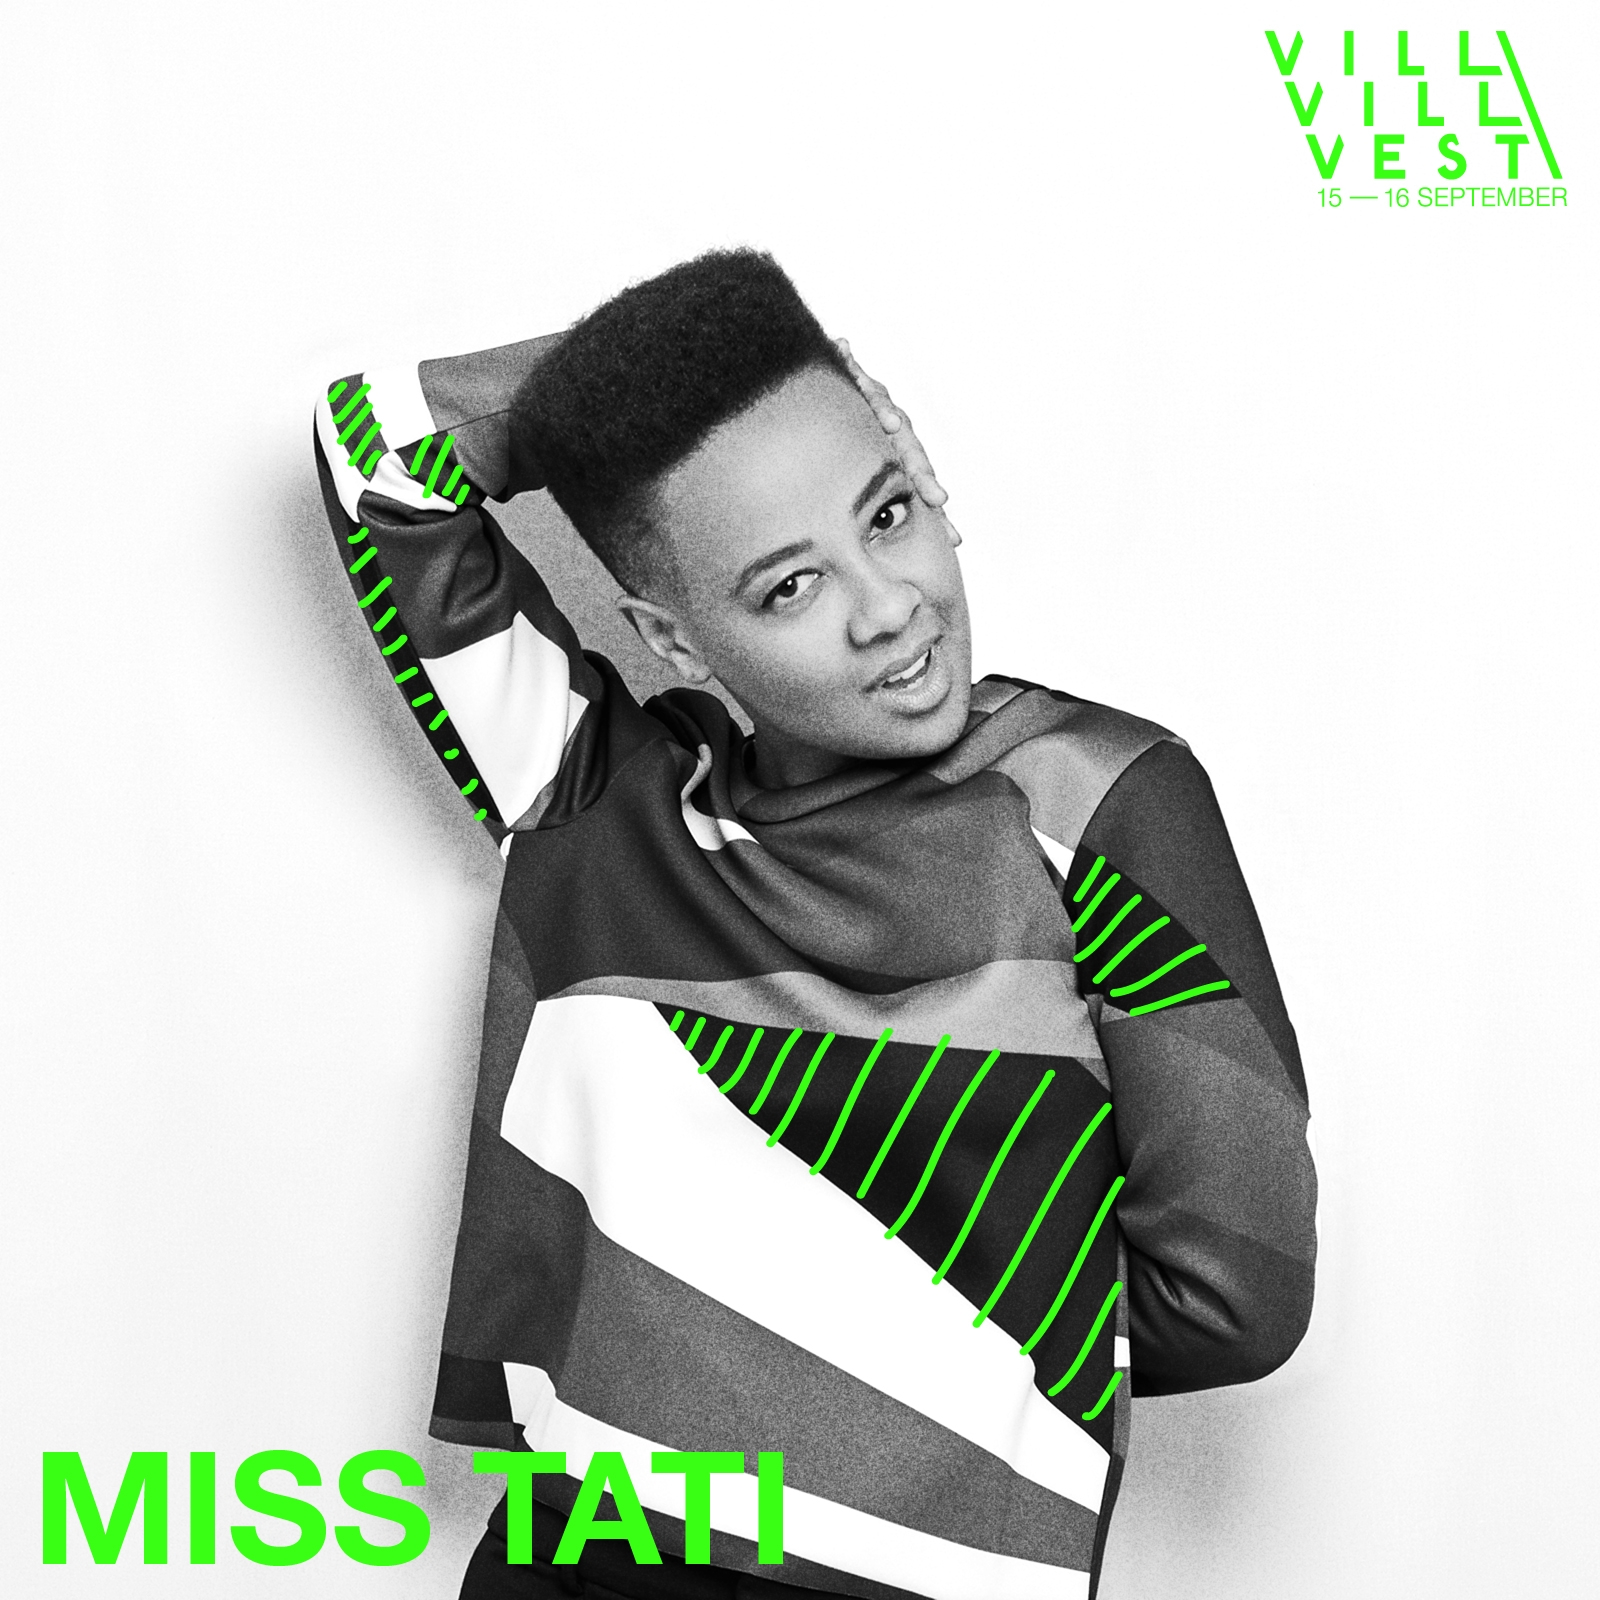 Copy Of Vill  Miss Tati